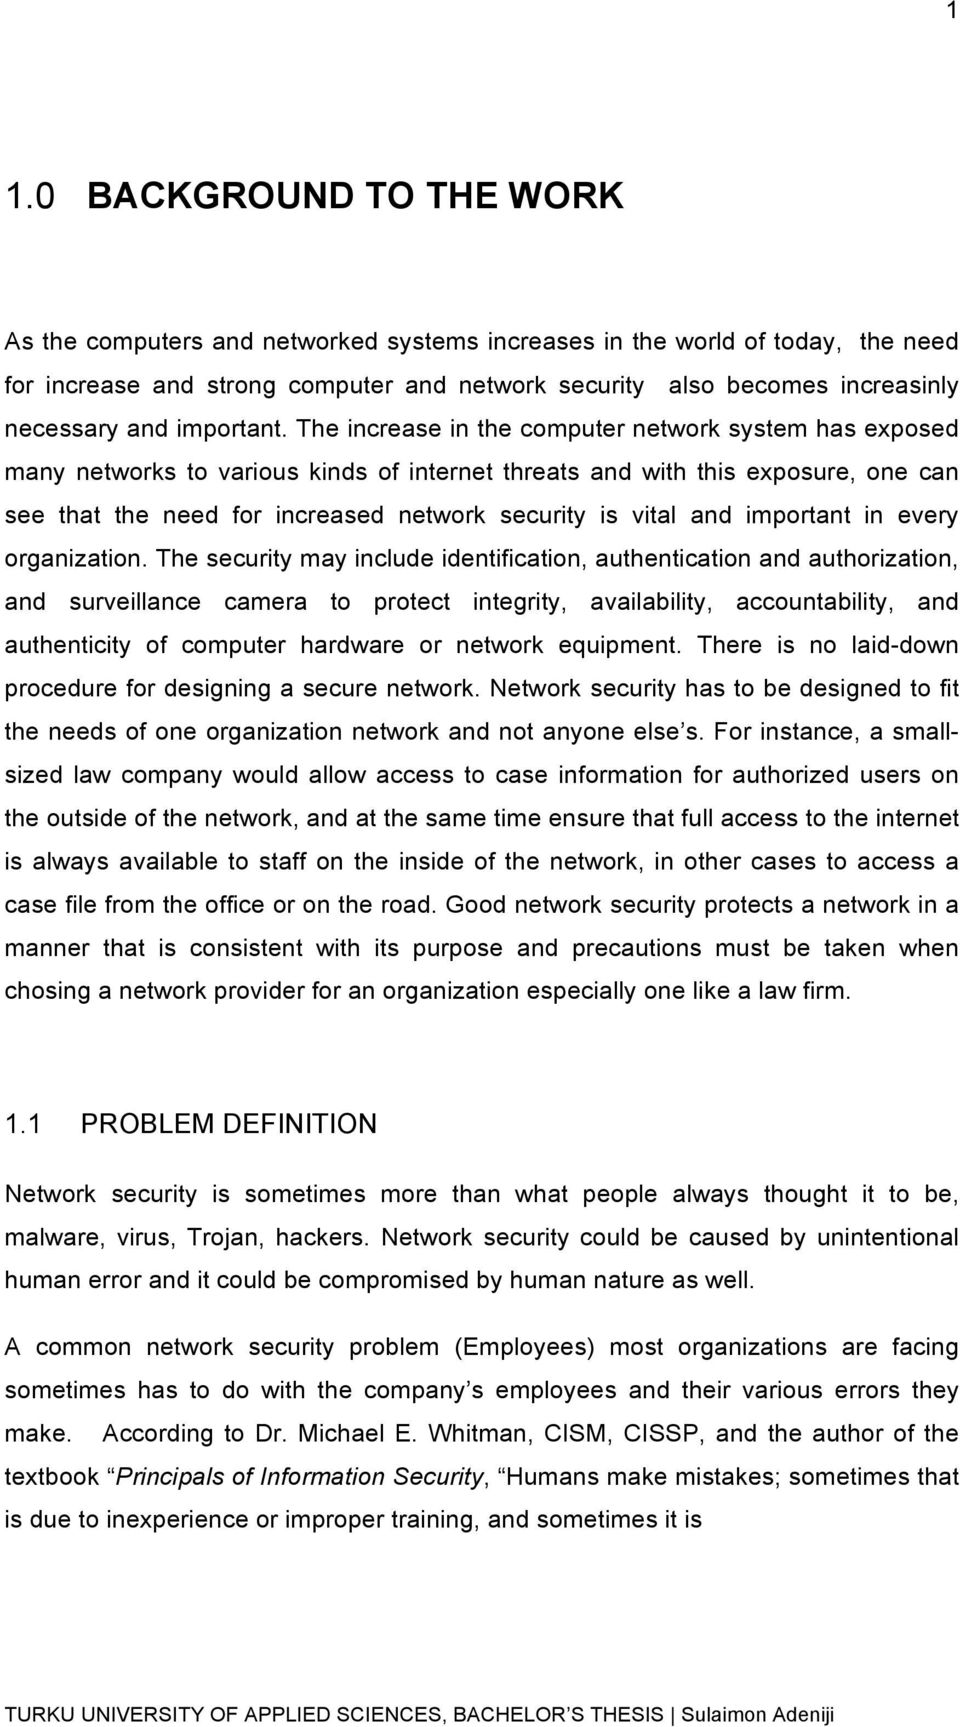 The increase in the computer network system has exposed many networks to various kinds of internet threats and with this exposure, one can see that the need for increased network security is vital